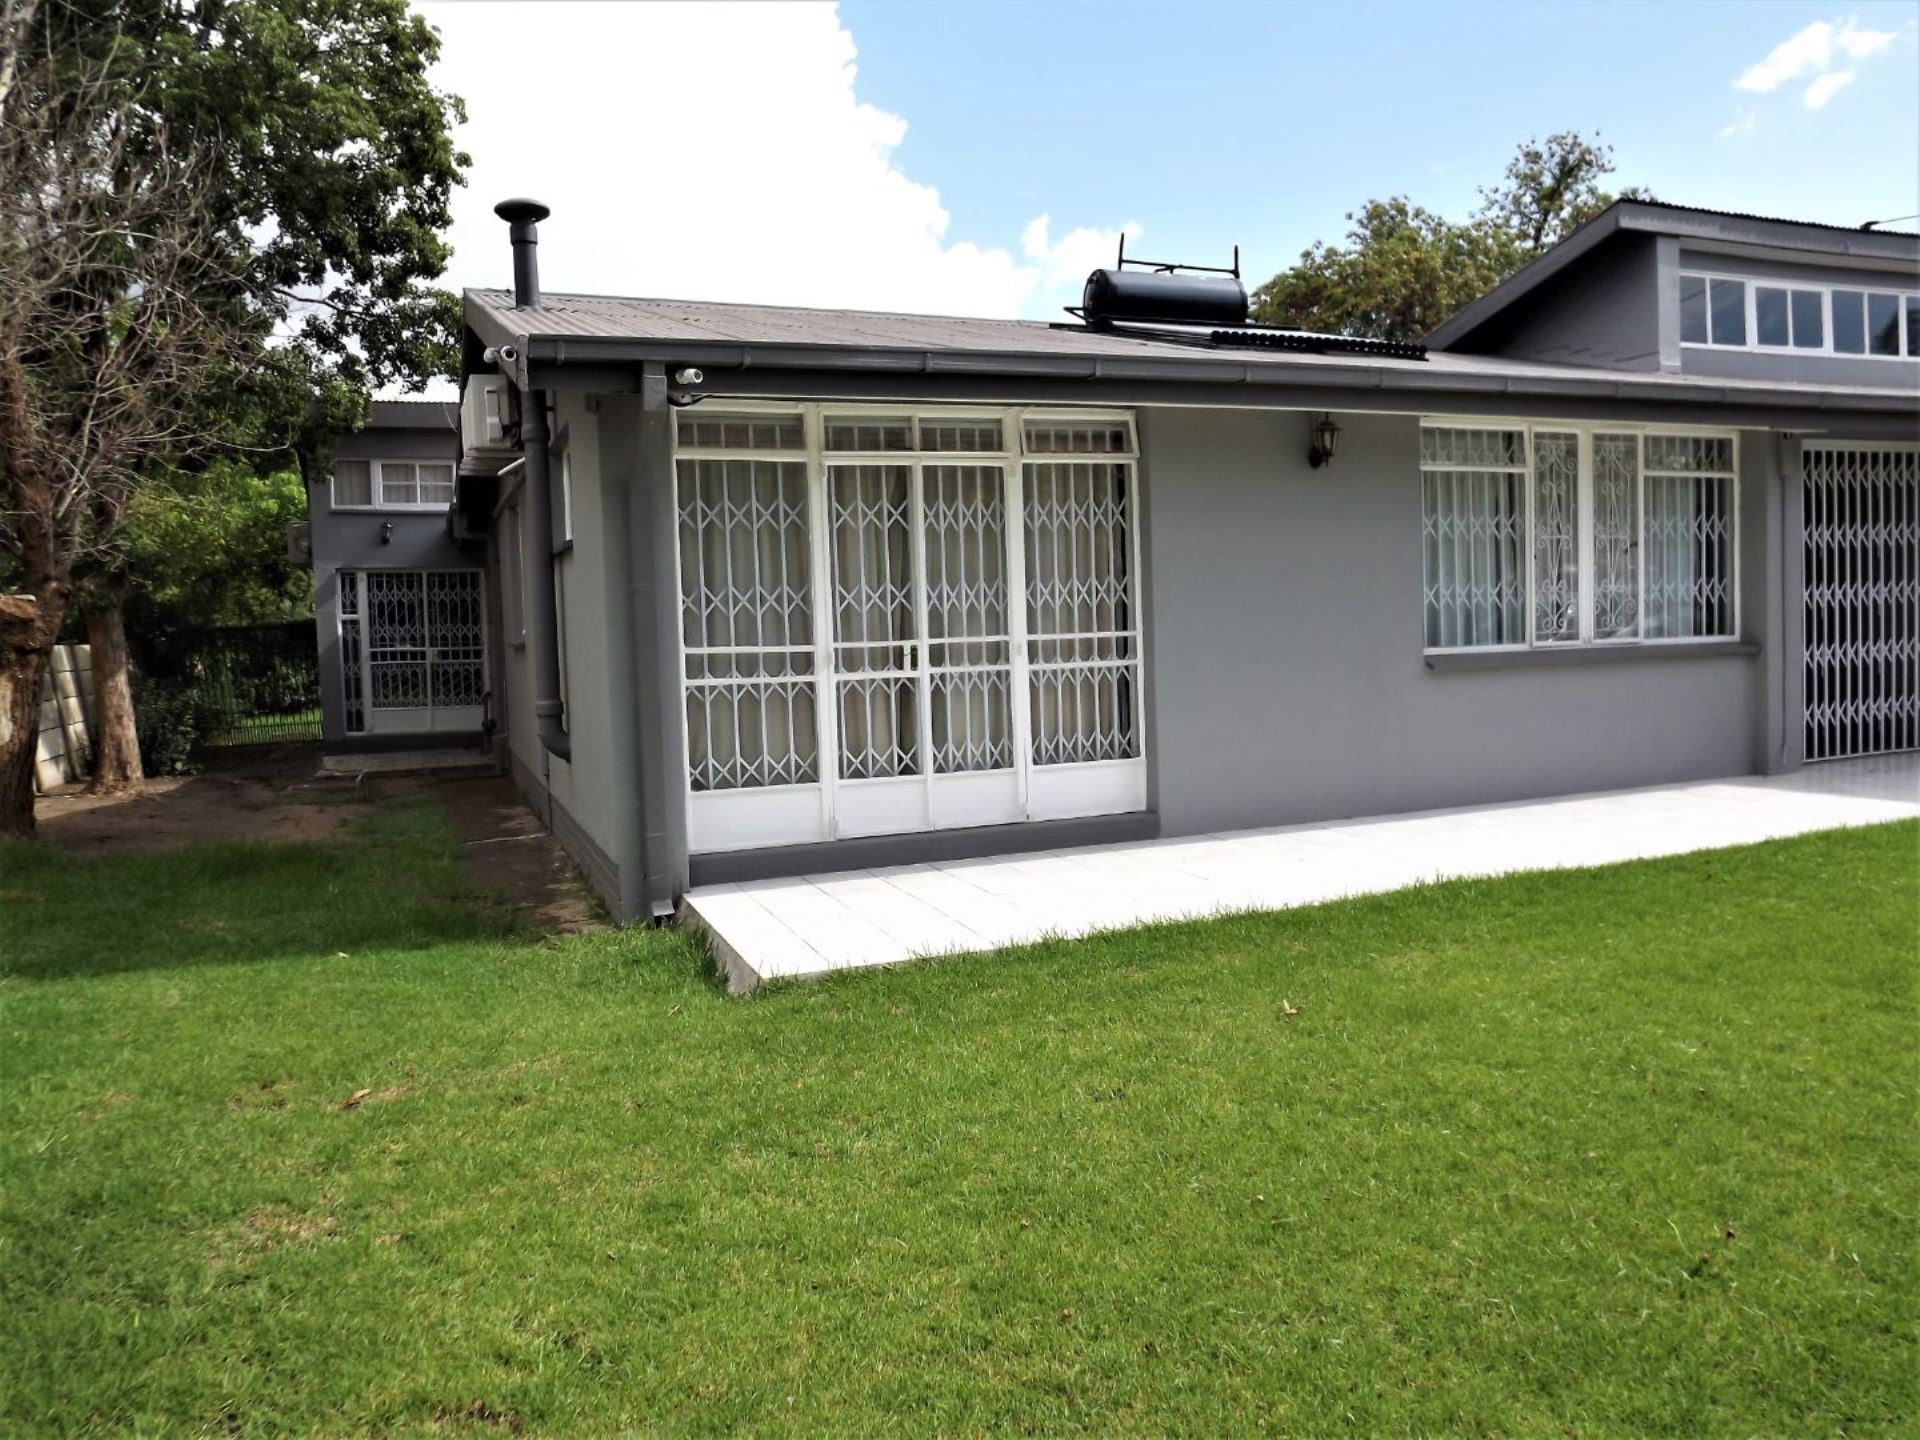 6 Bedroom House for Sale in Bayswater